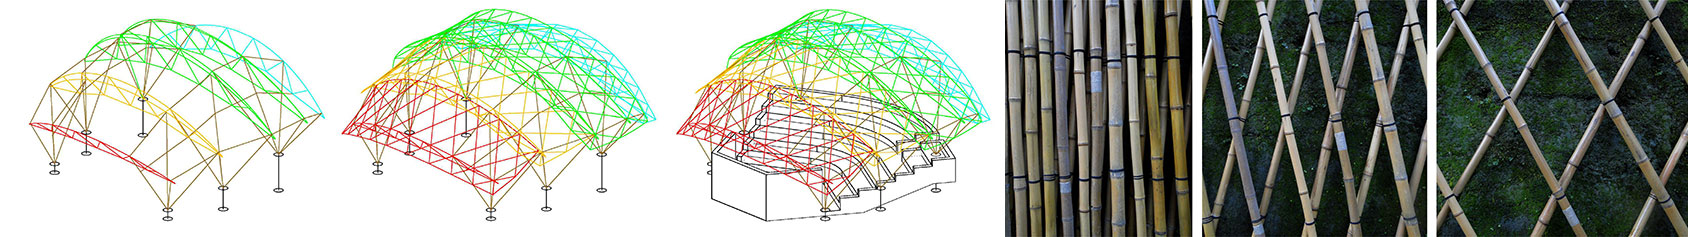 Active-bending-and-tensile-pantographic-bamboo-hybrid-amphitheater-structure-Journal-of-IASS.jpg